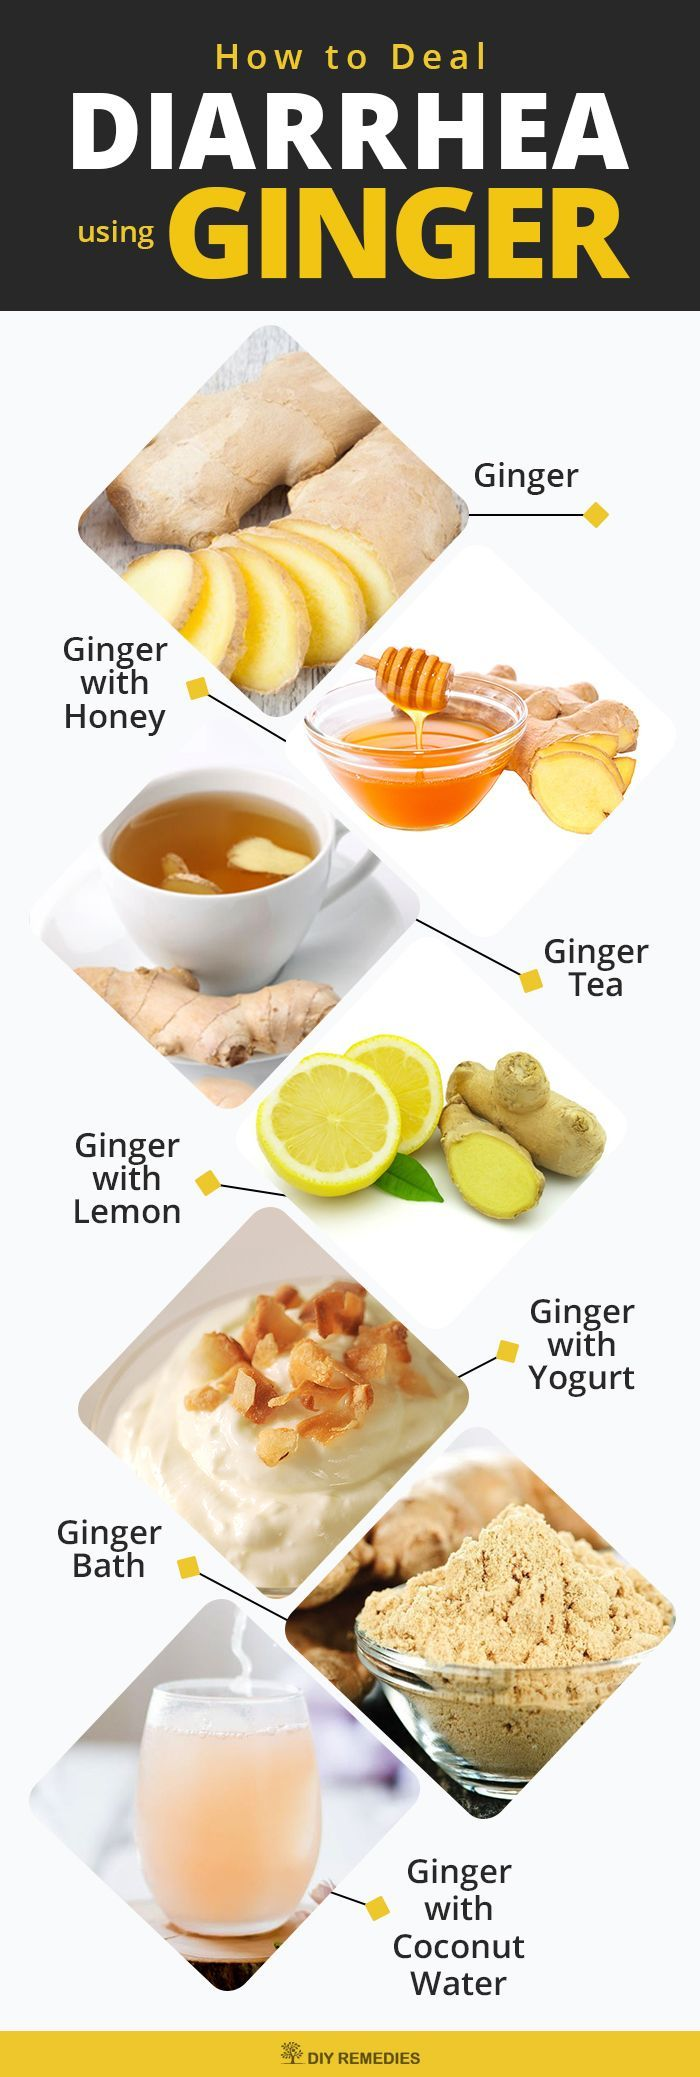 diarrhea remedy using ginger. ginger not only effectively used to